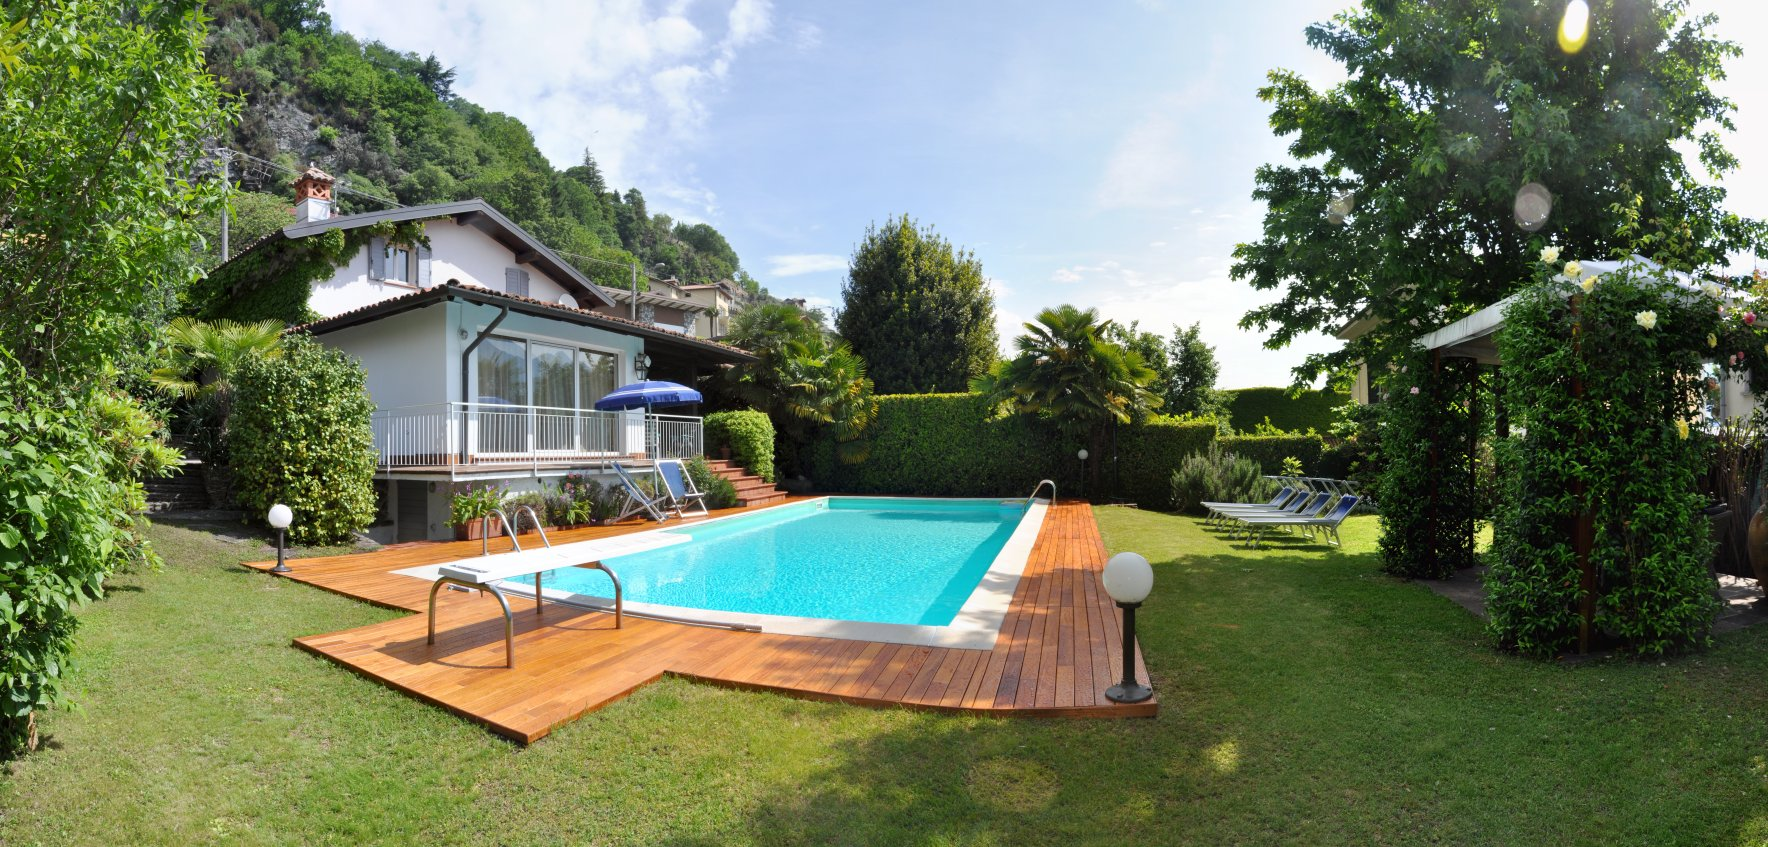 Ferienwohnung Mit Pool Comer See Vacation Villa With Private Swimming Pool On Lake Como